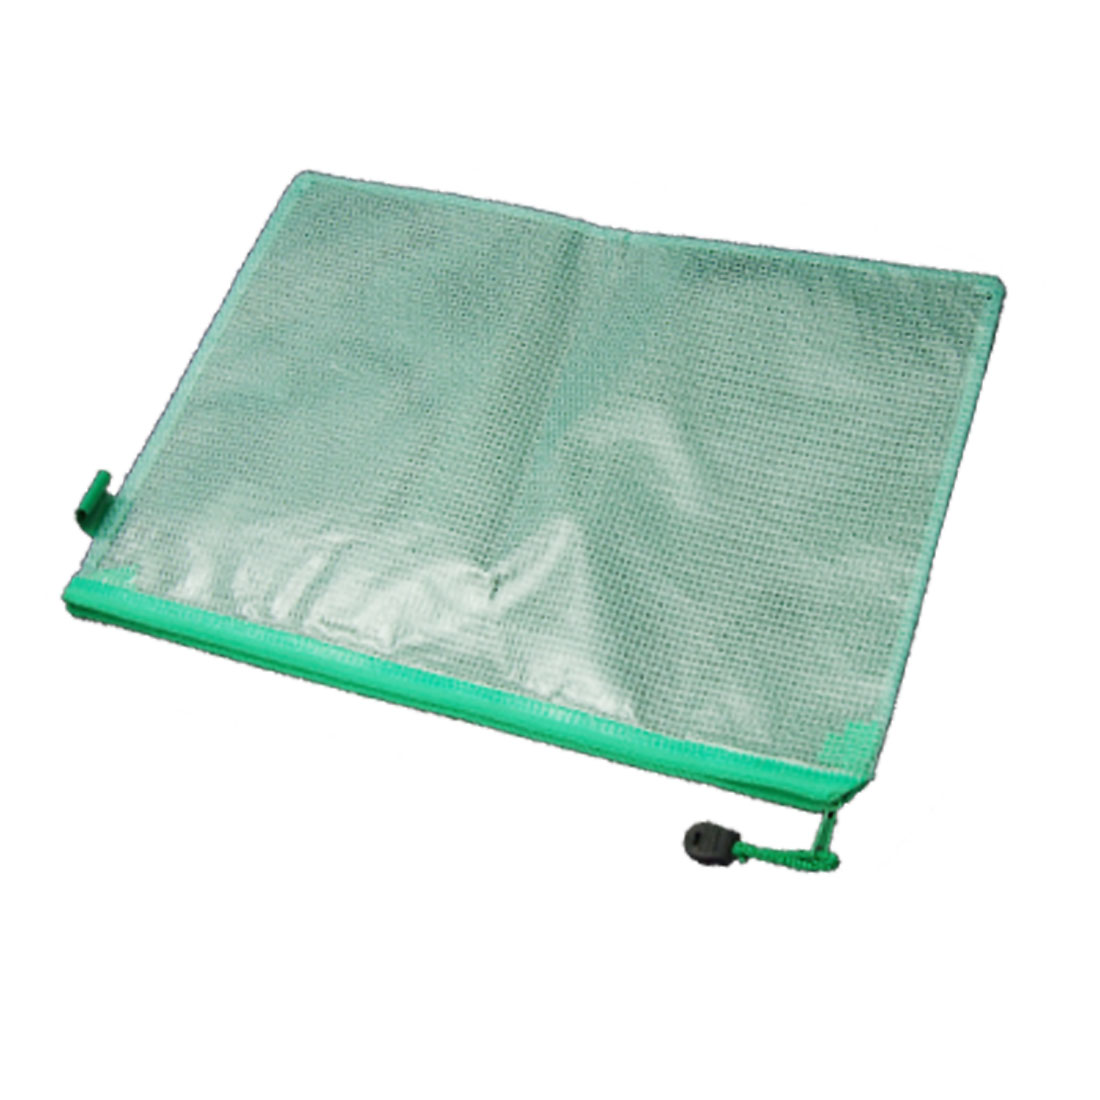 A4 Green Net Design Document File Folder Bag Zipper Closure